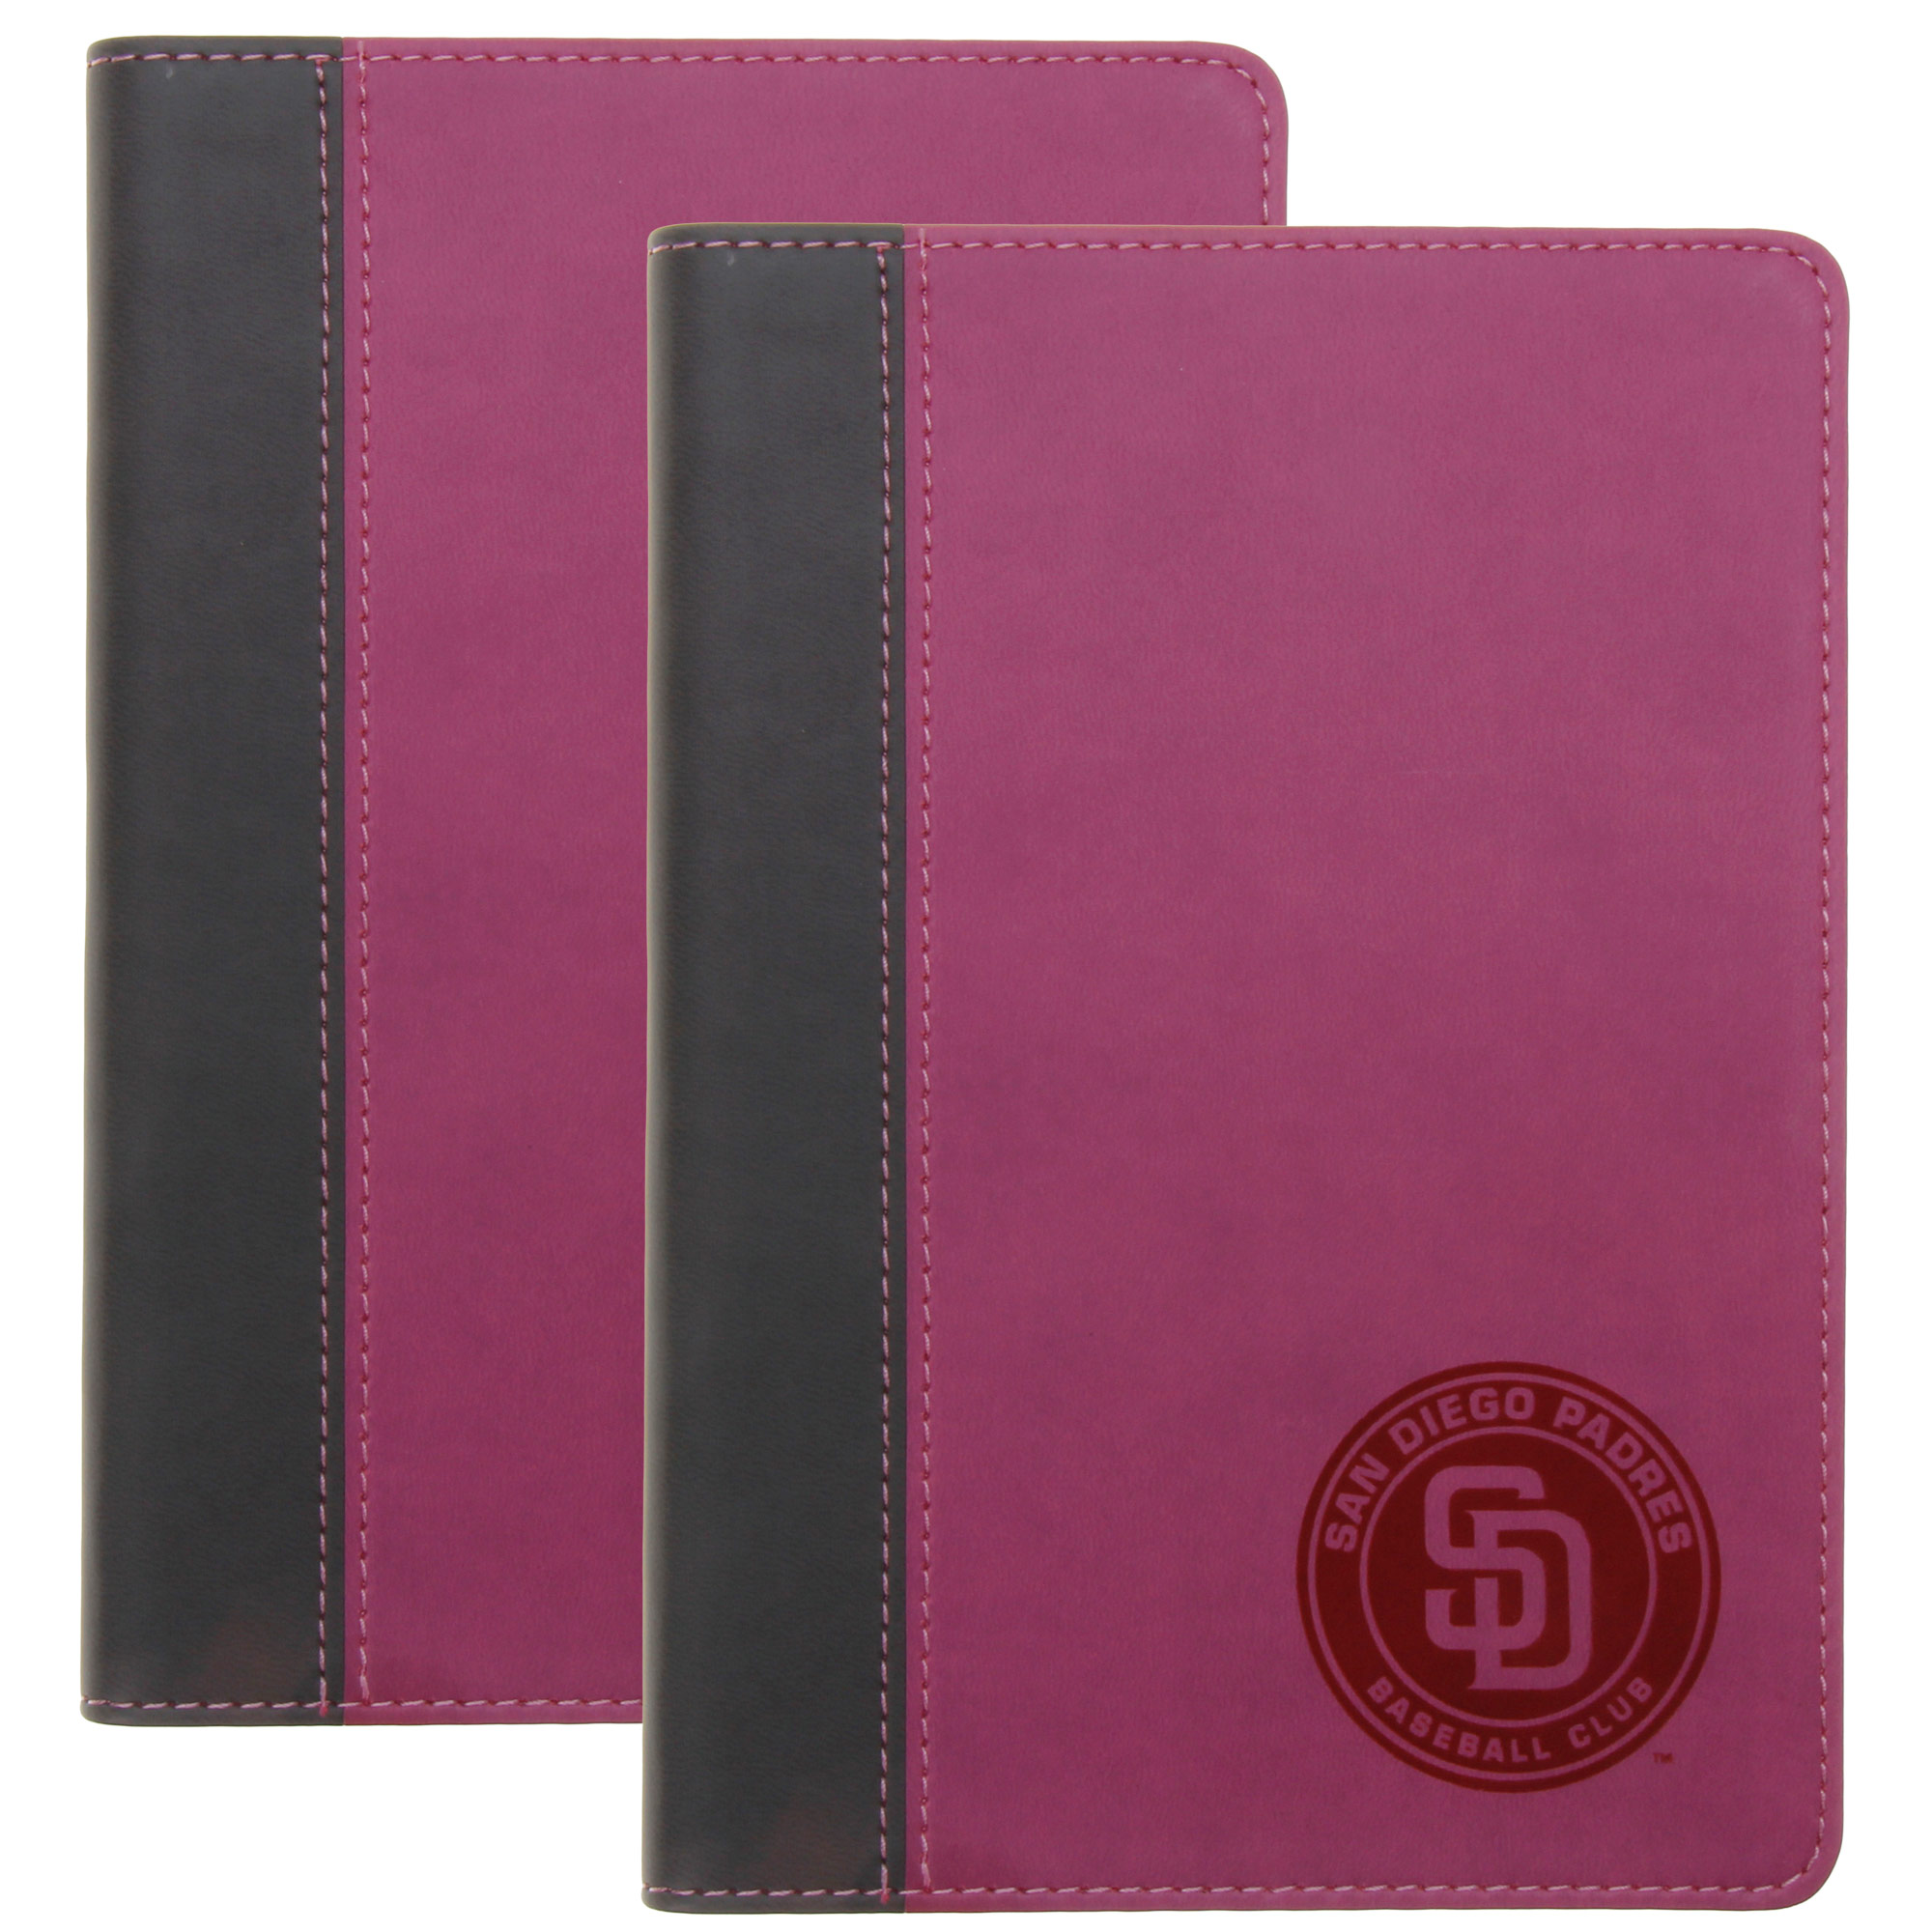 San Diego Padres Journal 2-Pack - Pink - No Size